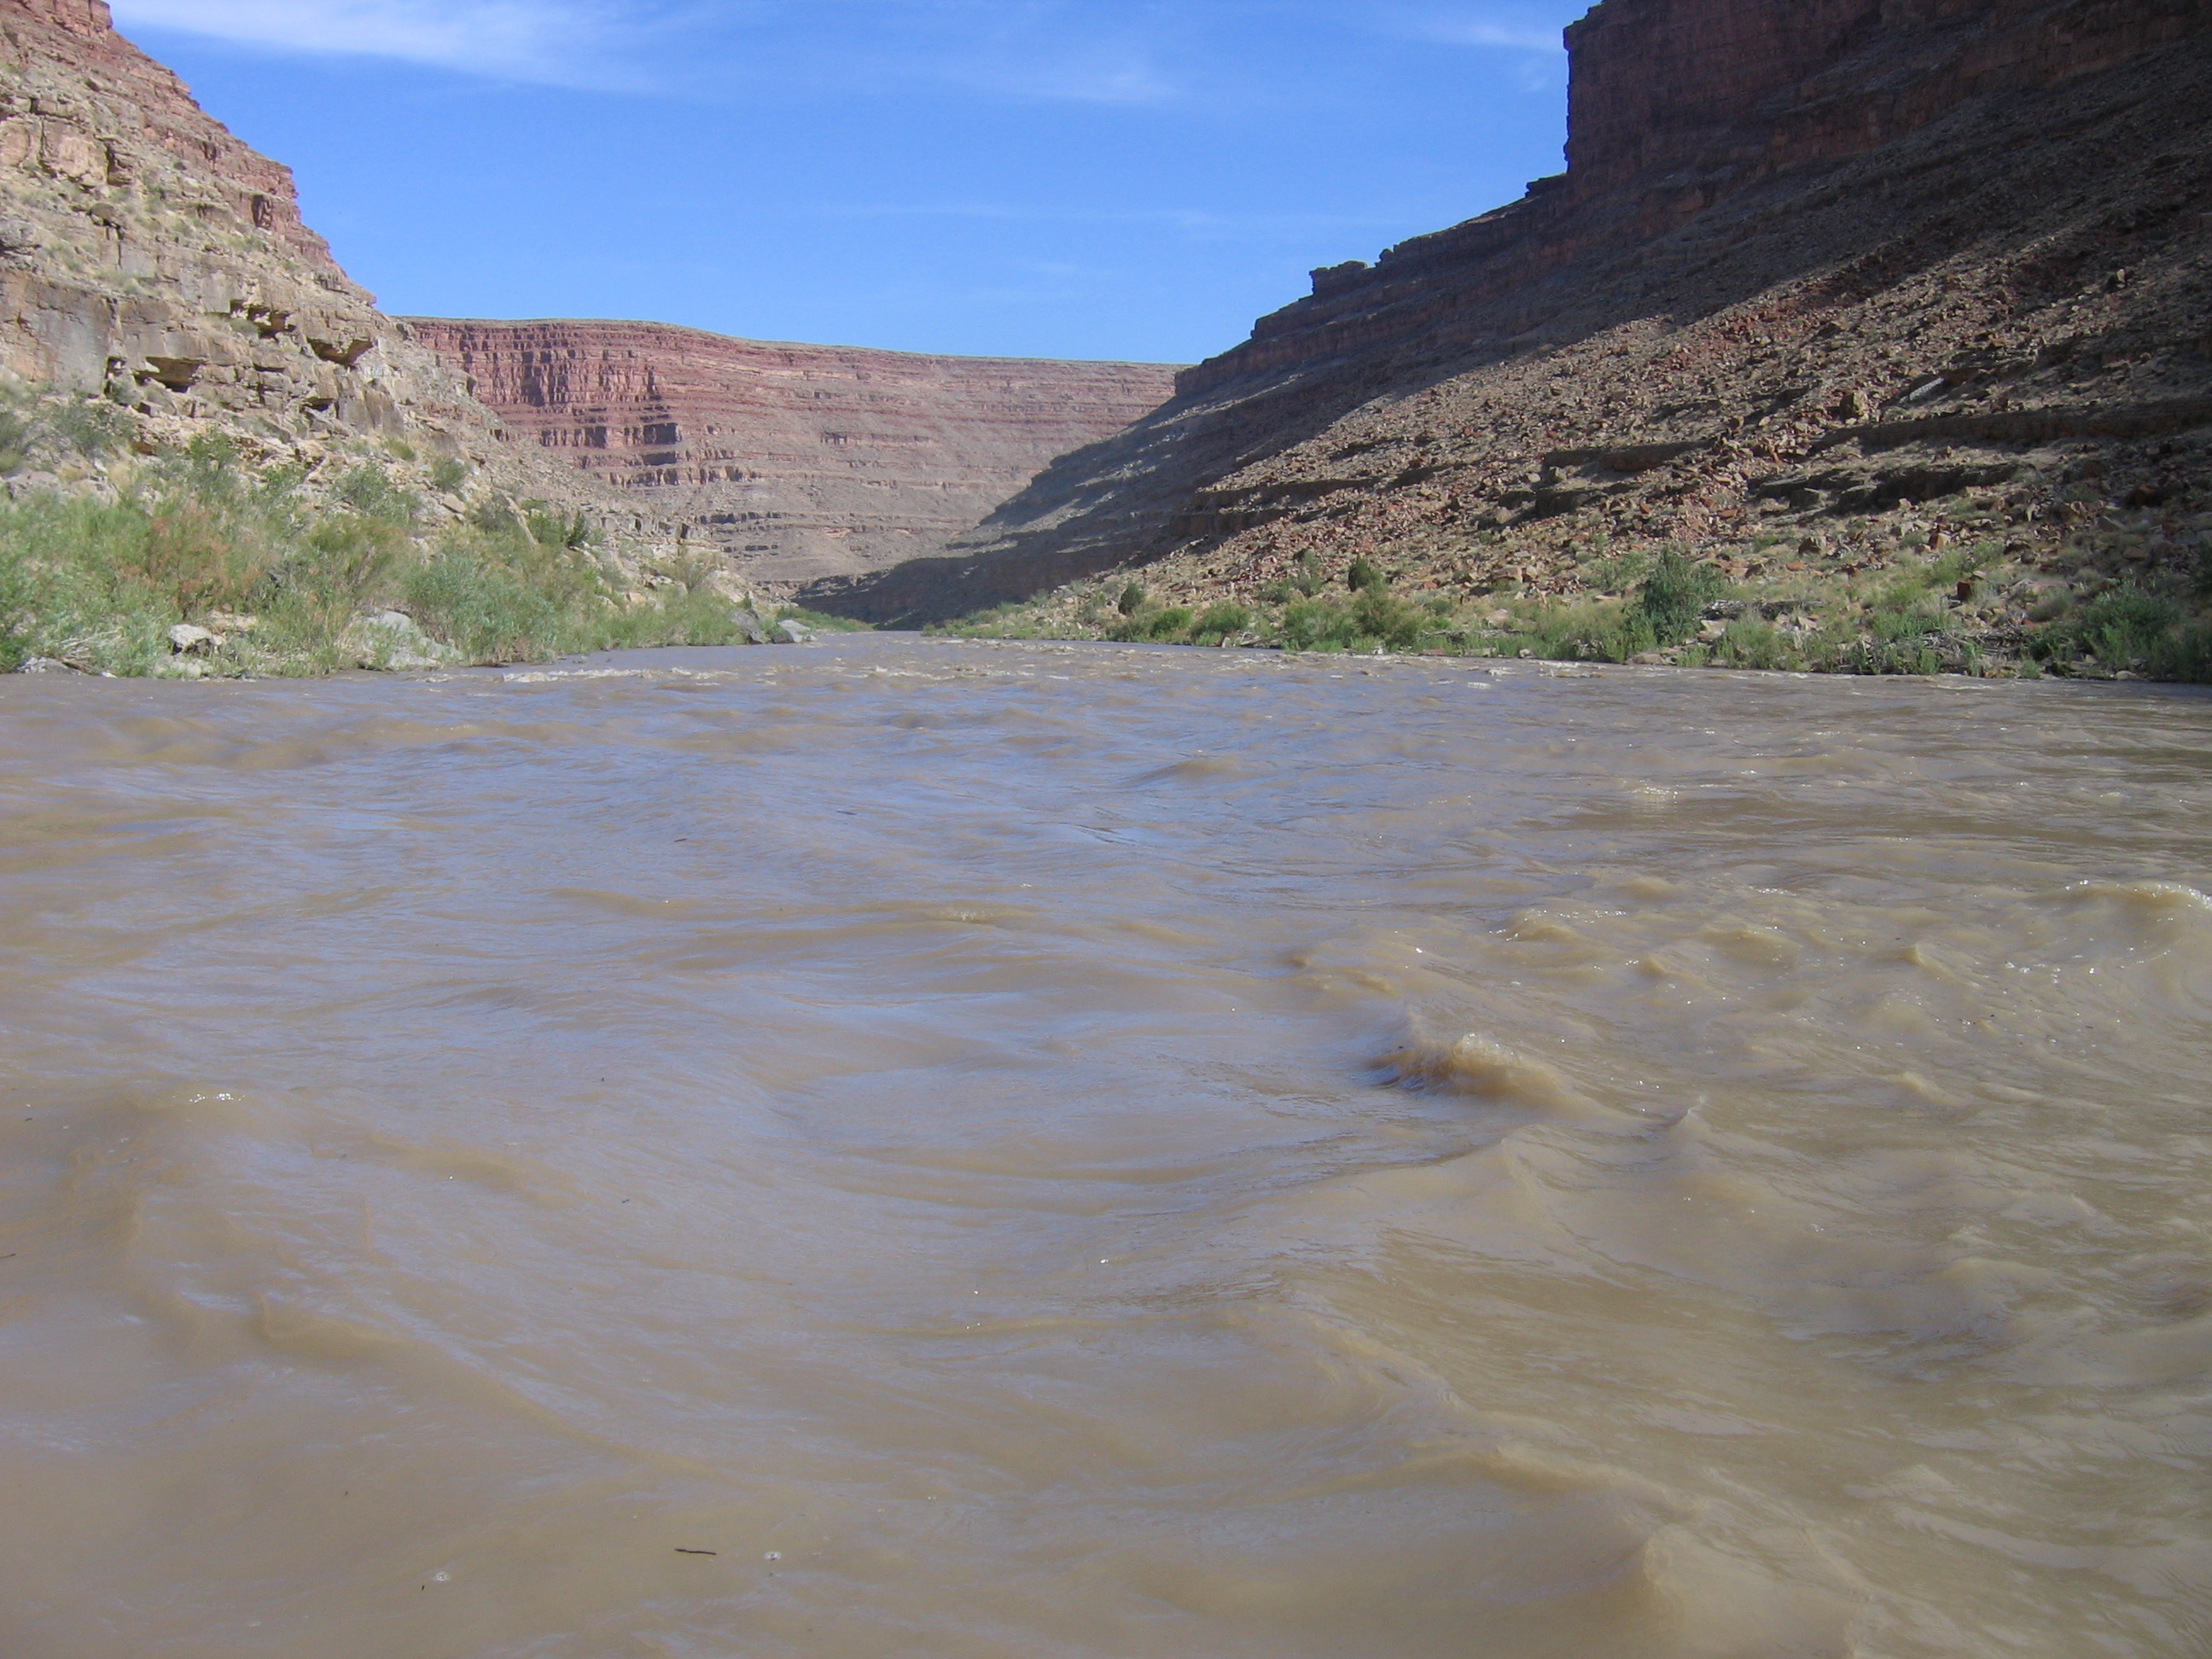 Brown river running through canyons